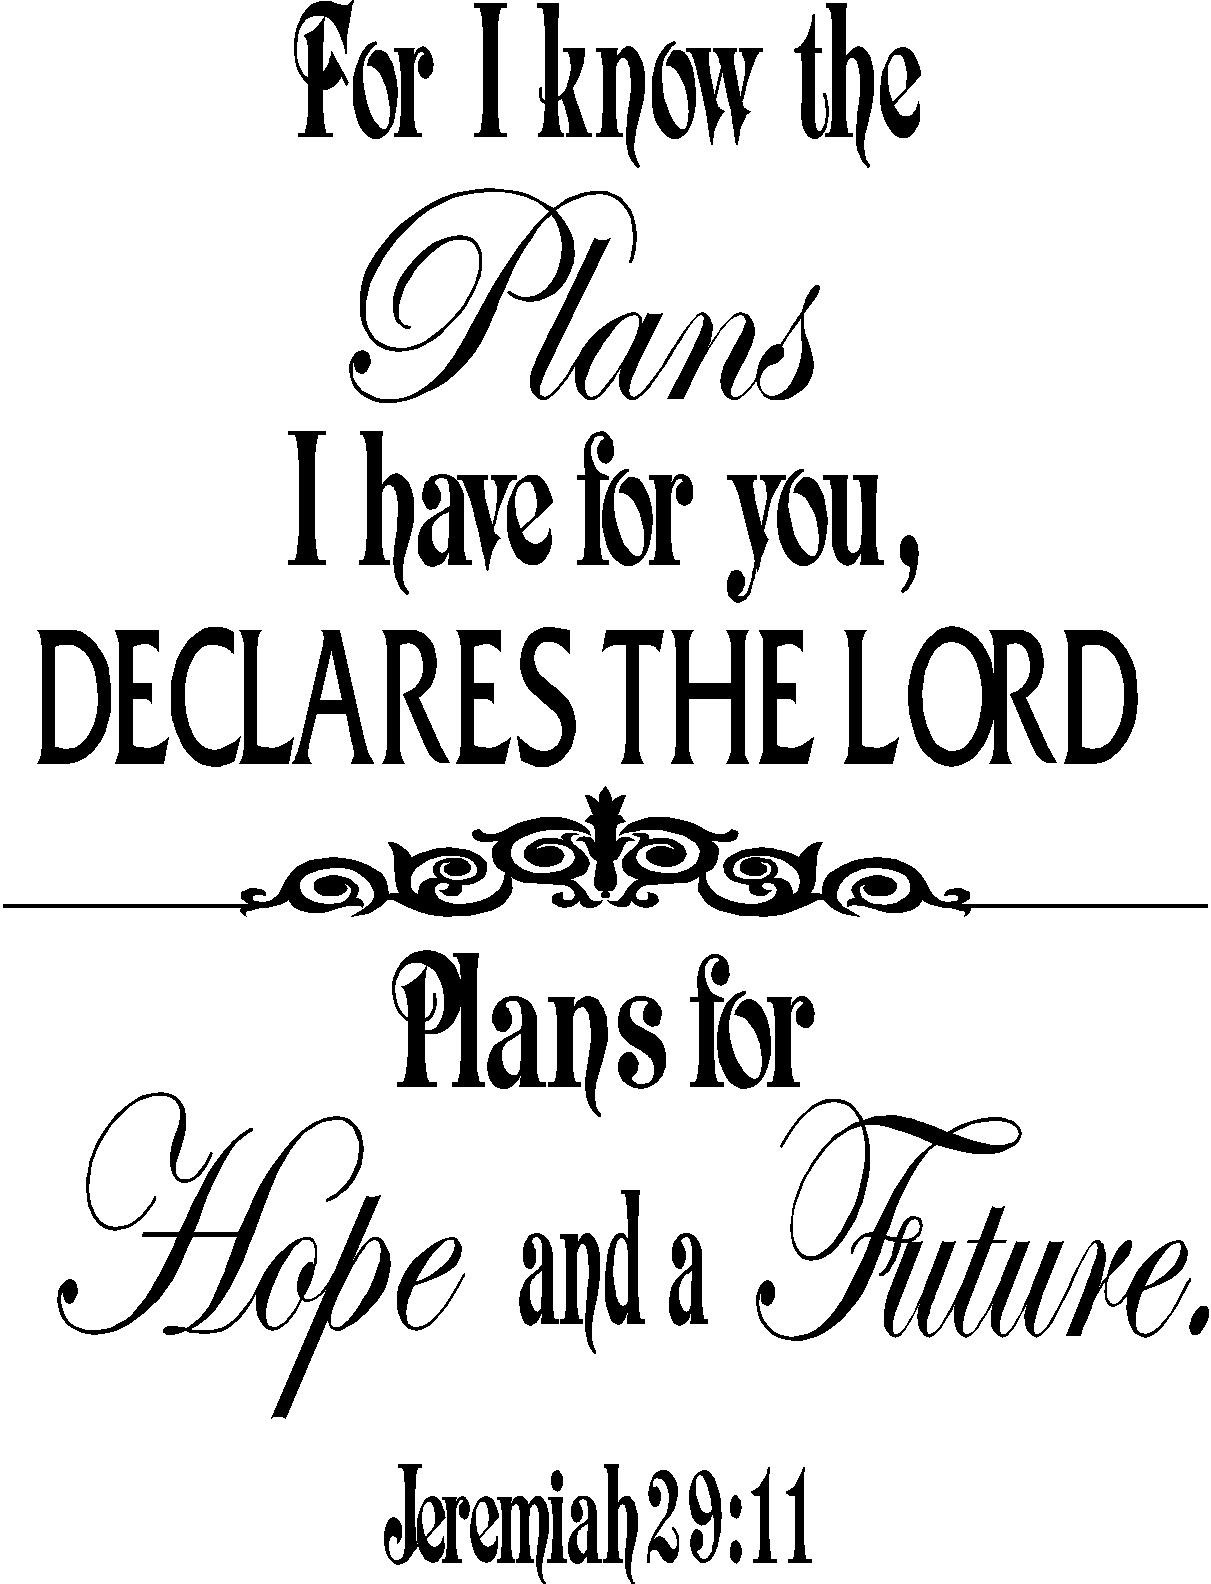 god made me coloring page - jeremiah 29 11 for i know the plans i